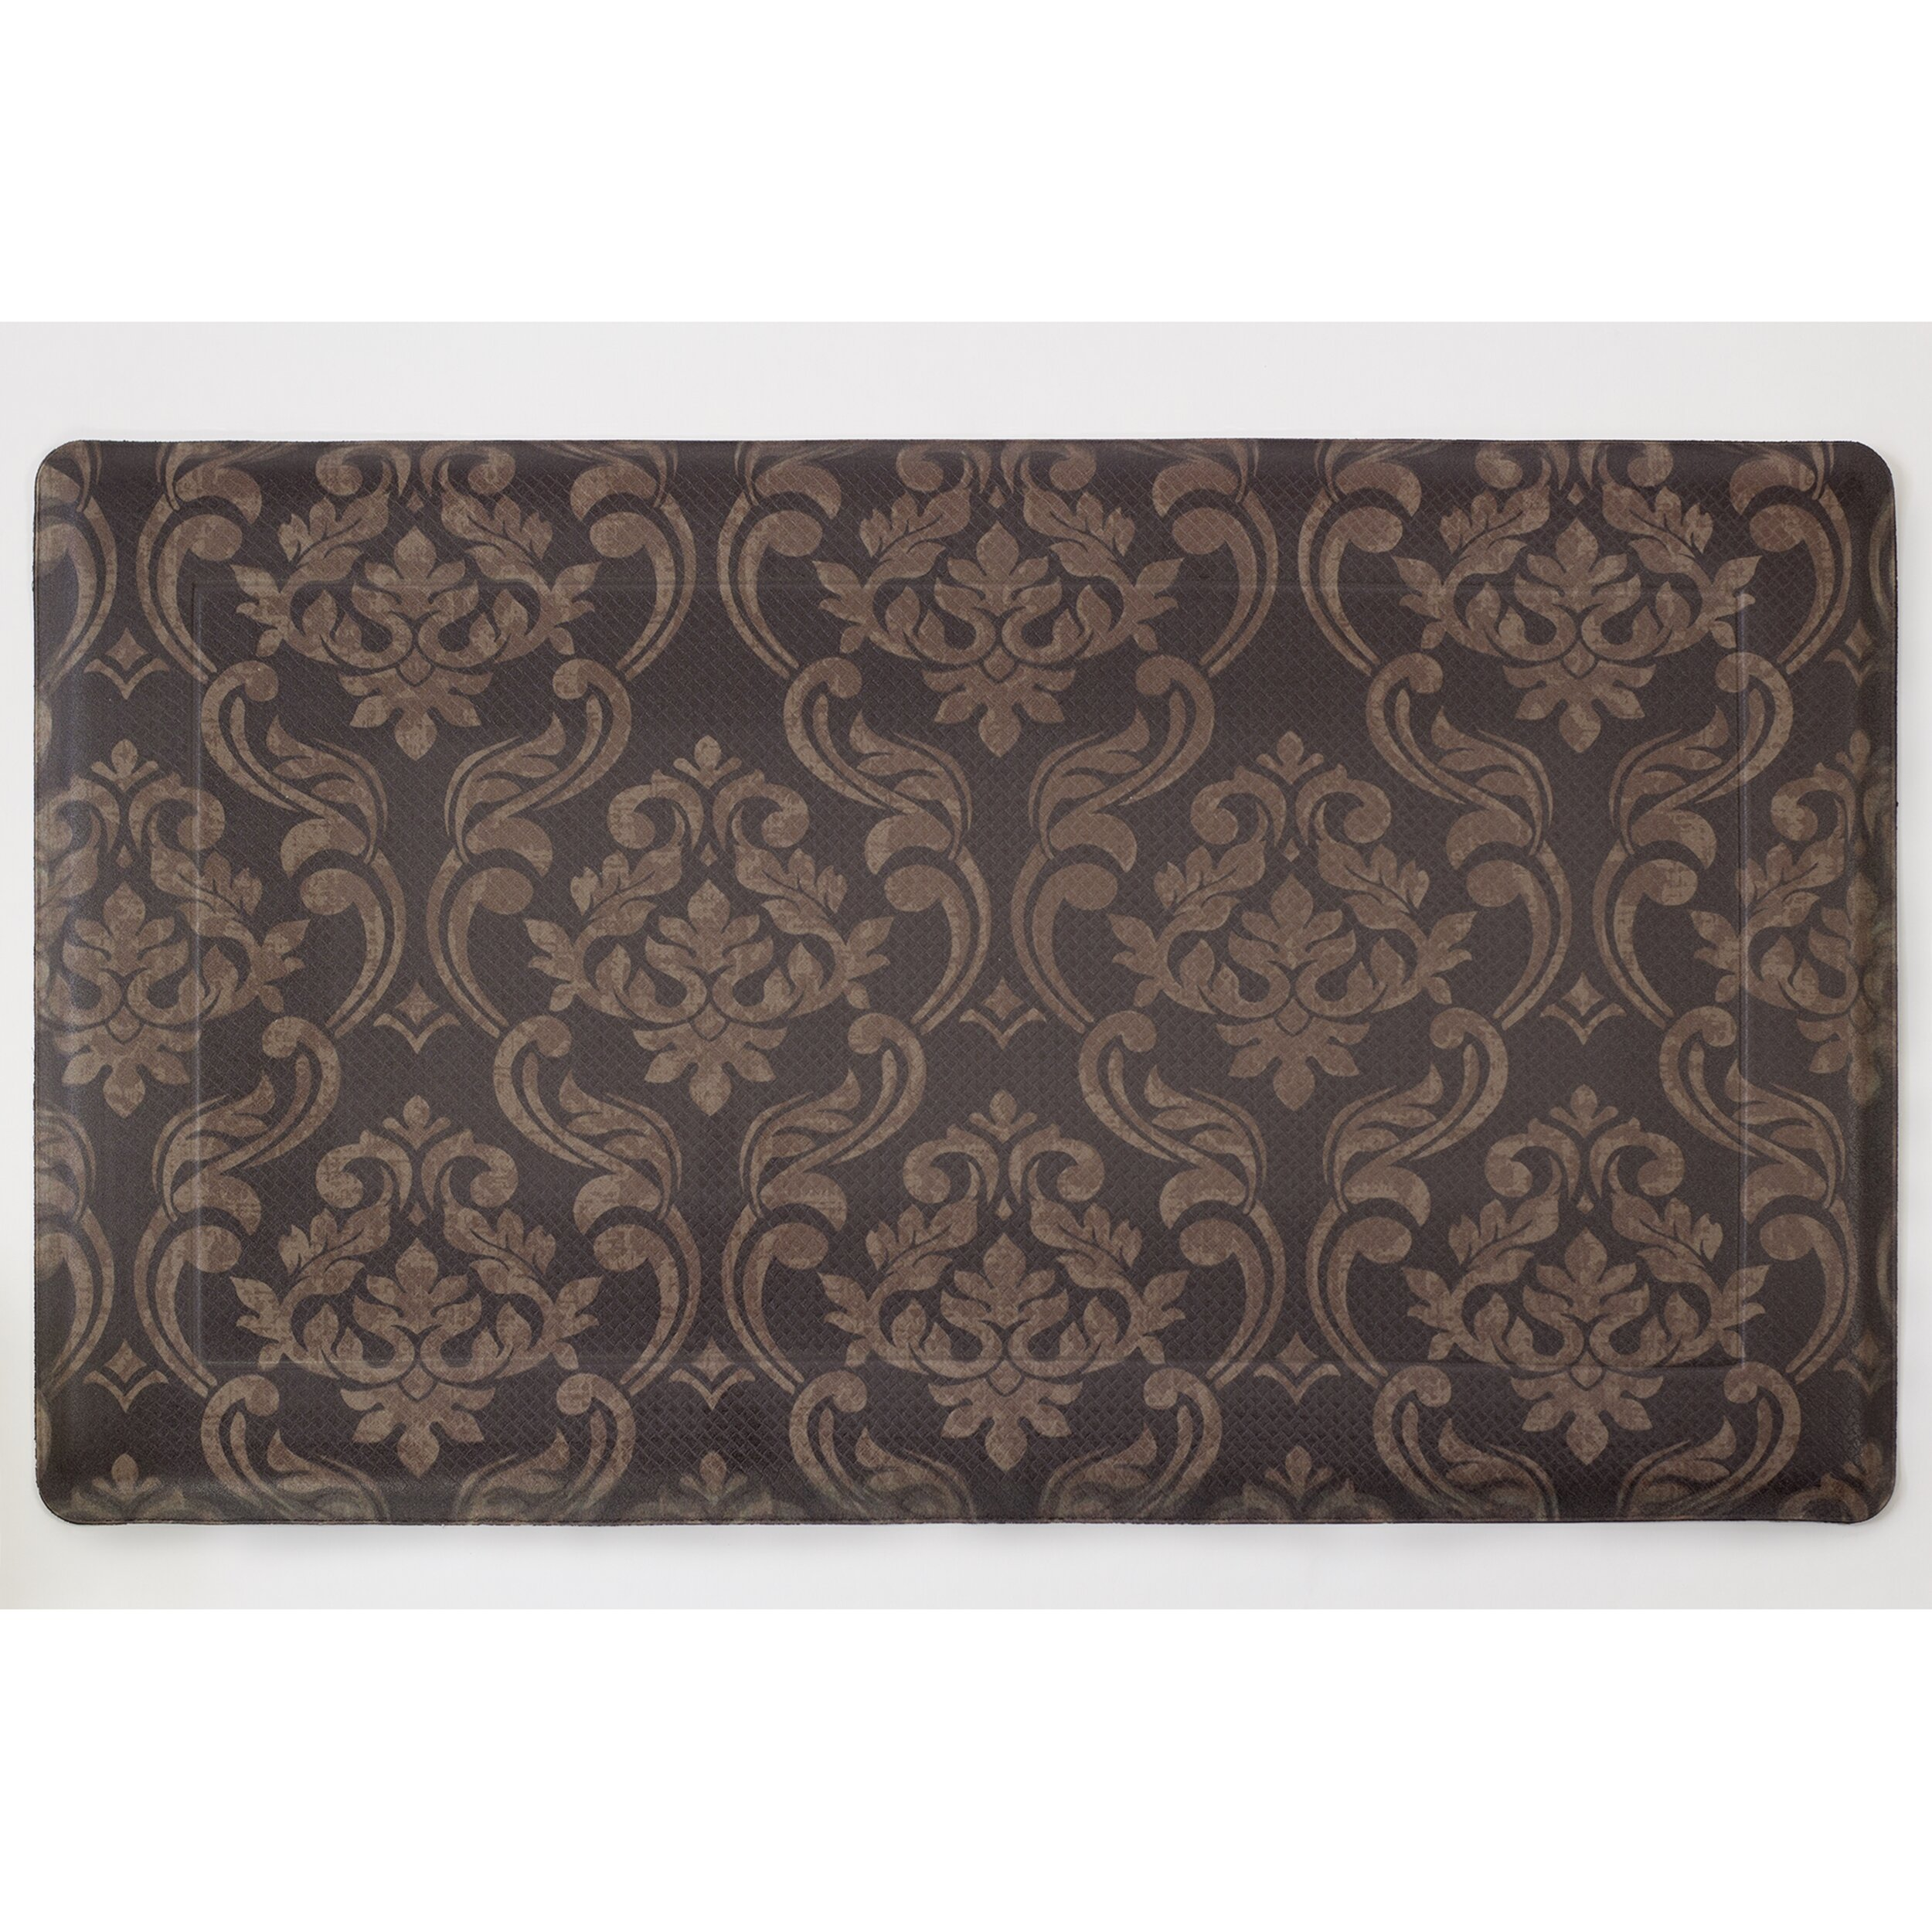 Cushioned Floor Mats For Kitchen Kitchen Floor Mats Youll Love Wayfair